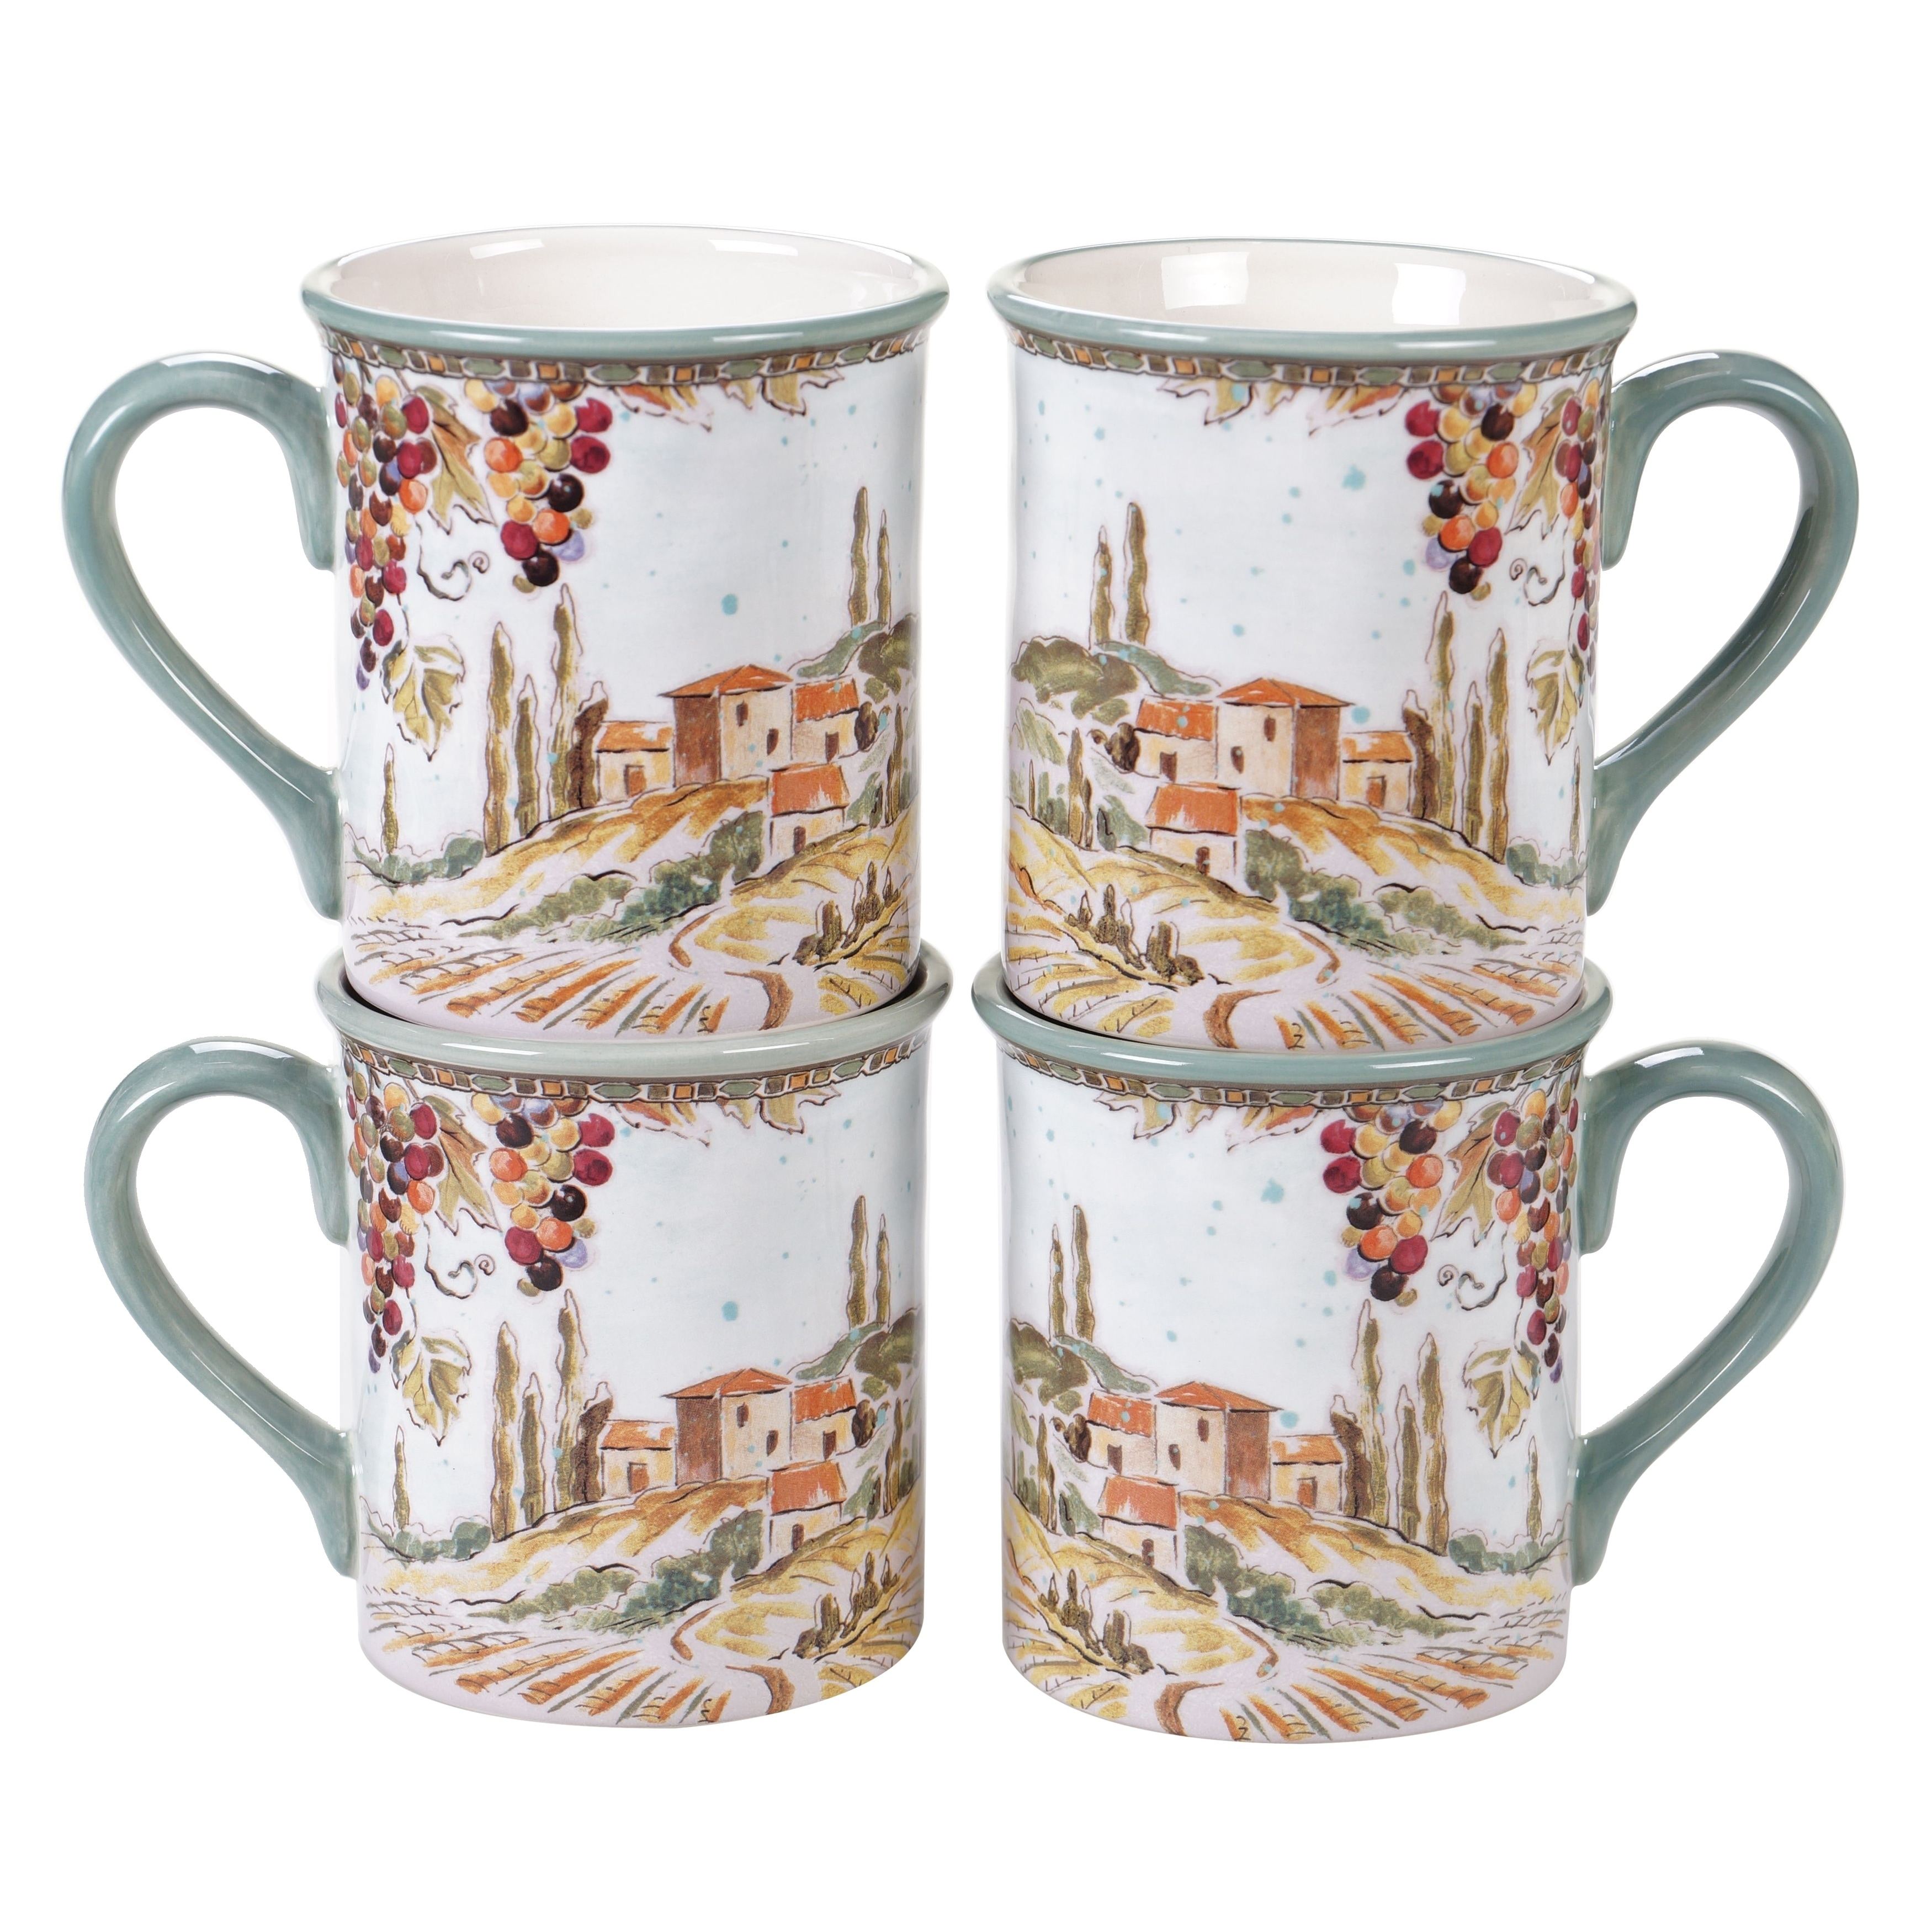 Certified International Tuscan Breeze Mugs Set Of 4 Overstock 29099500